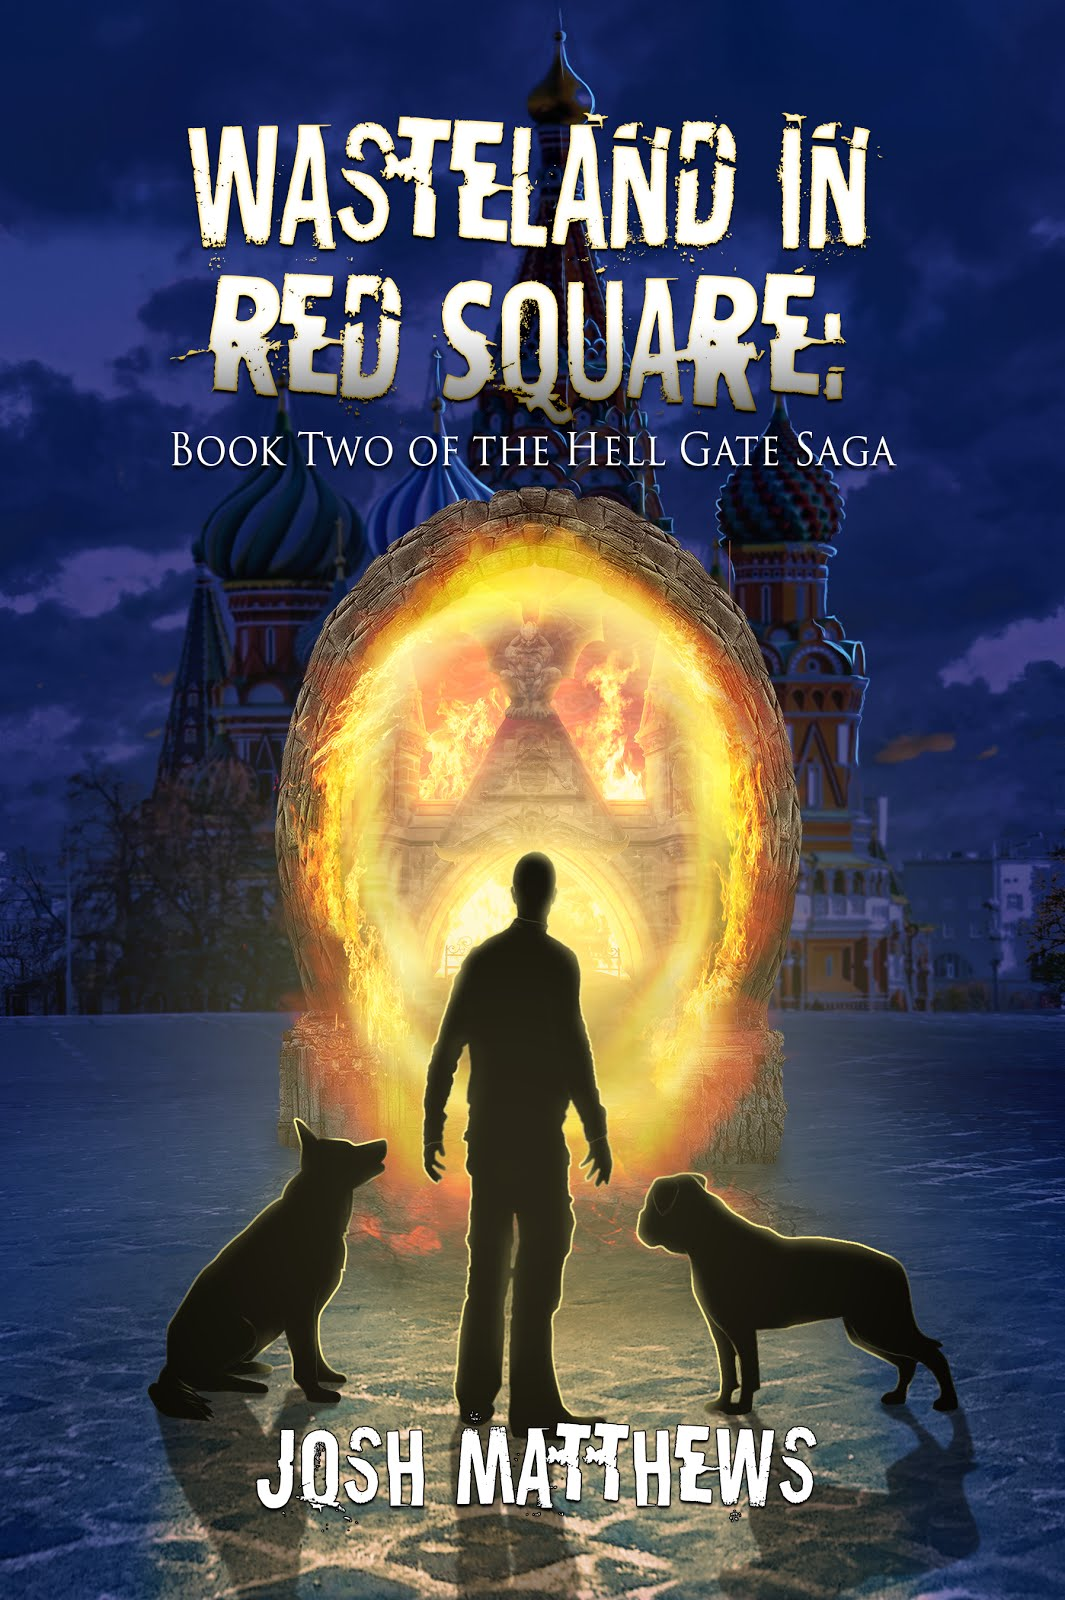 Wasteland in Red Square: Book Two of the Hell Gate Saga